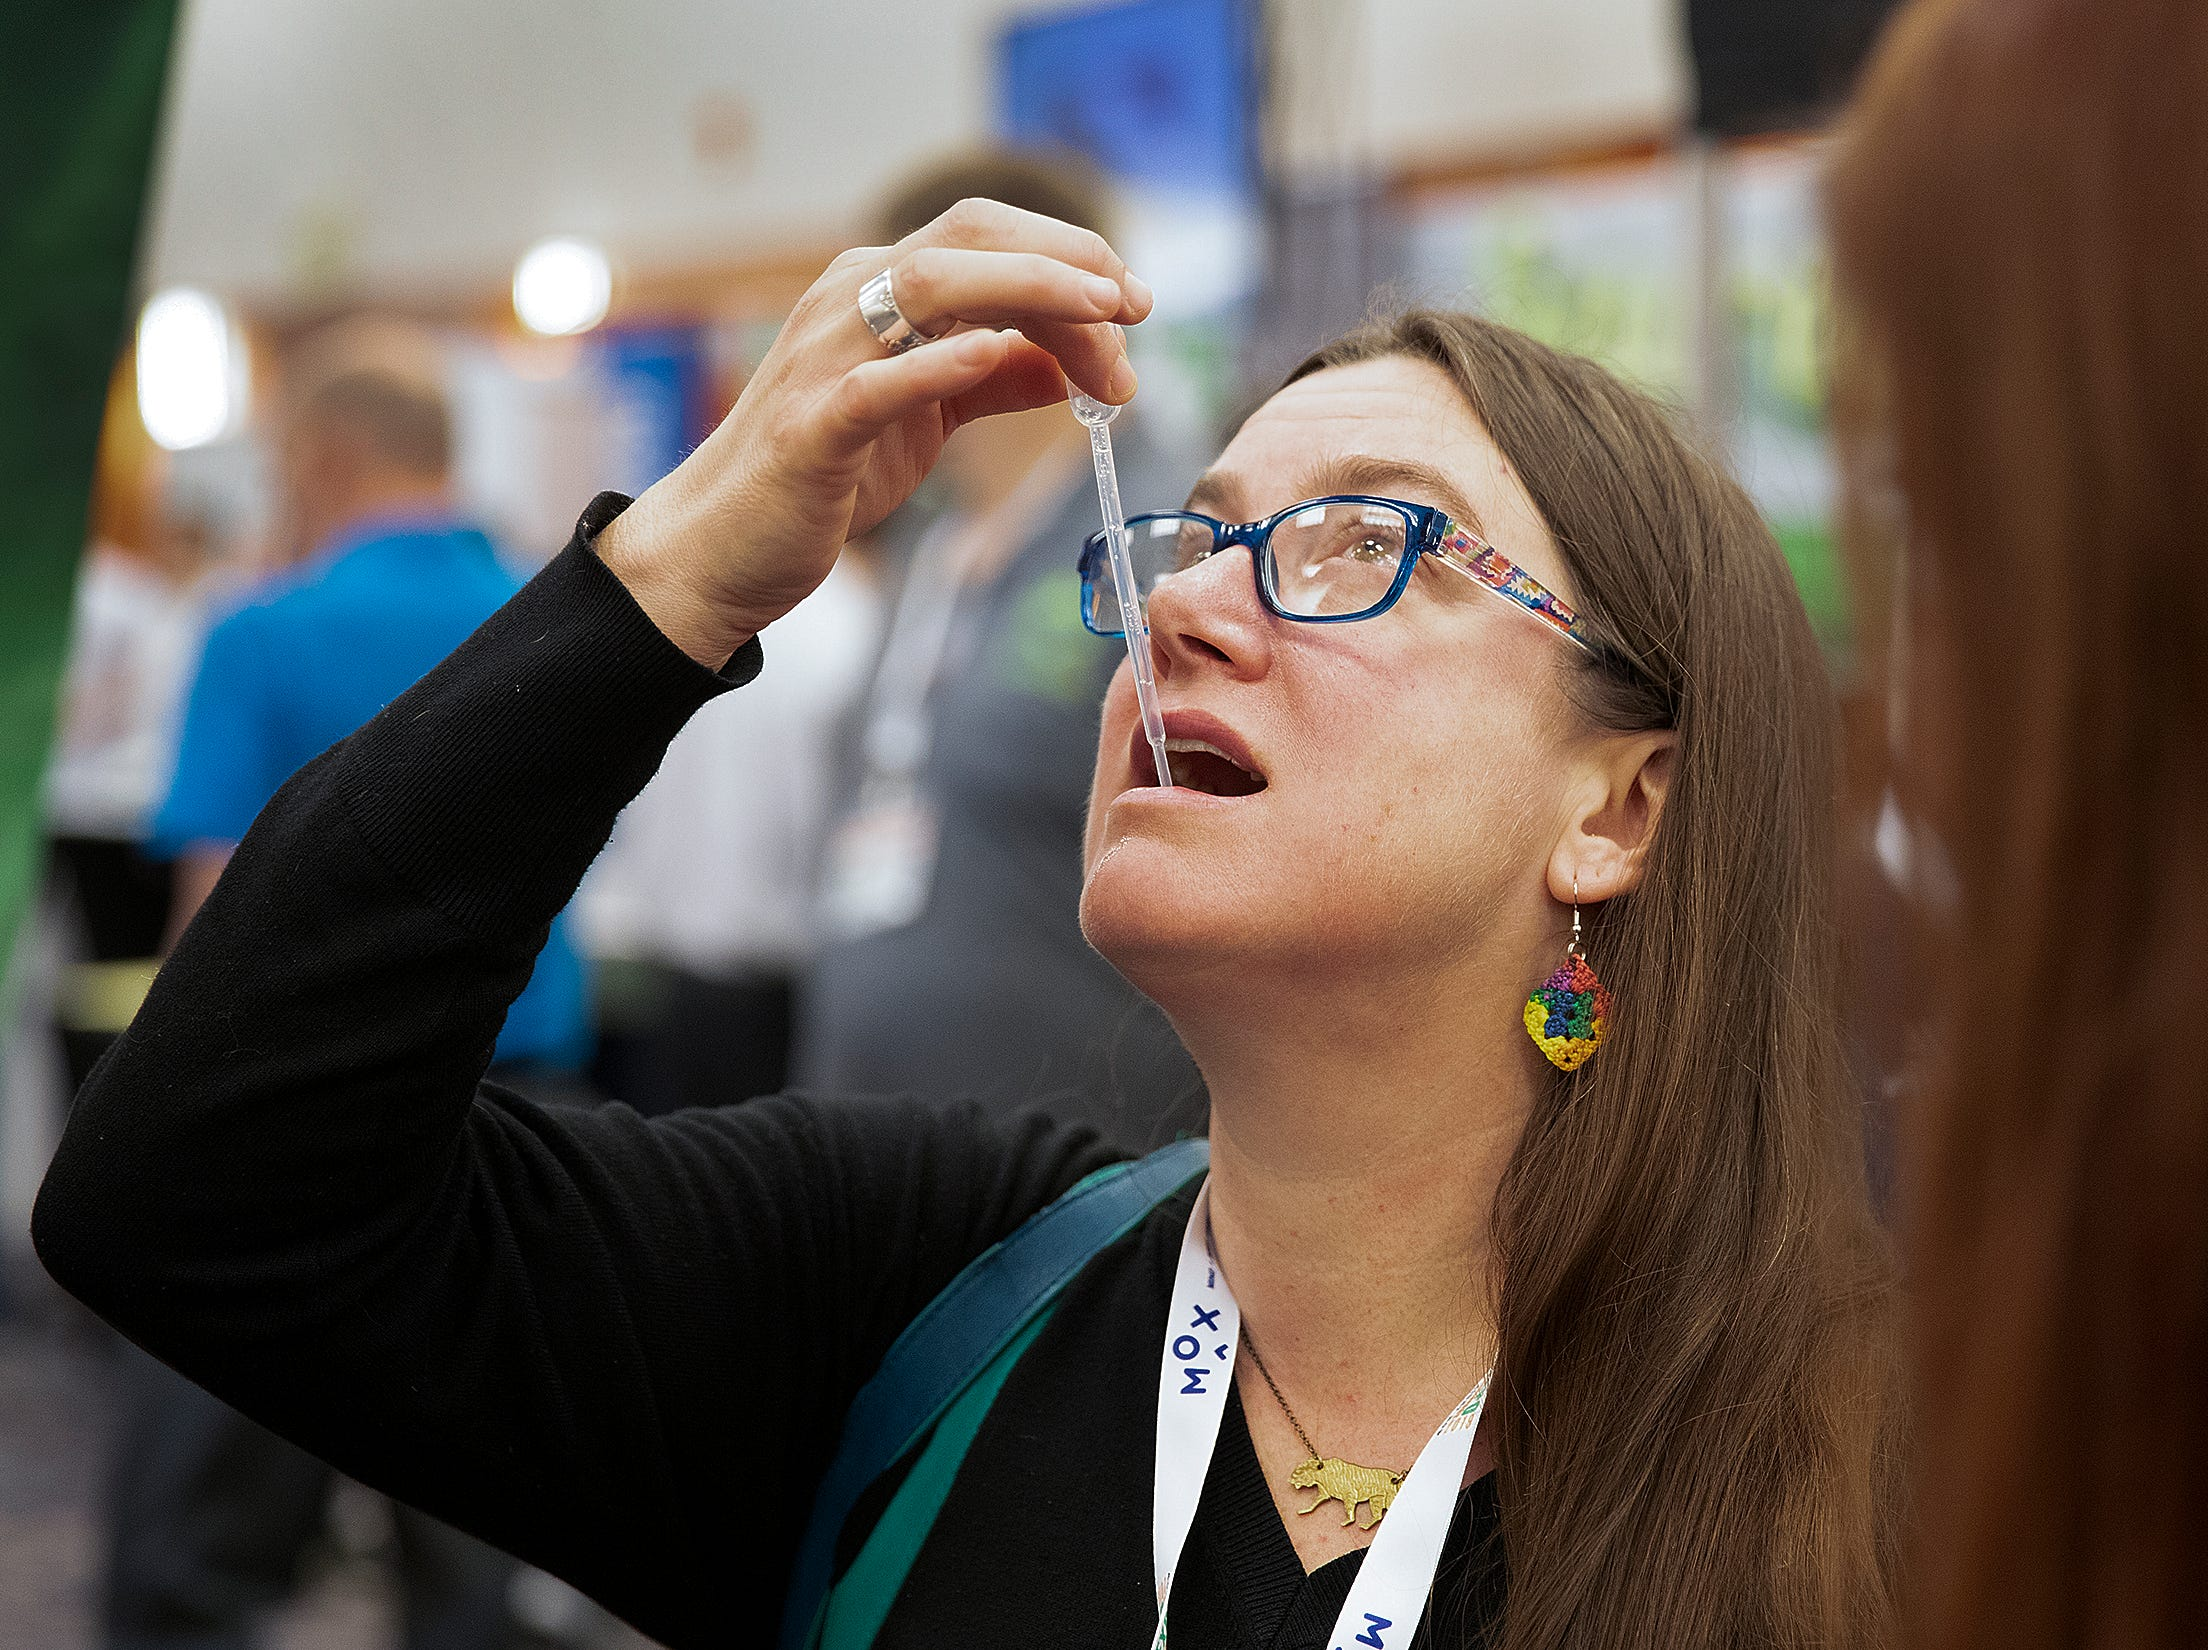 CBD Expo goers were encouraged to try different CBD oils at the CBD Expo at the Marriott East in Indianapolis on Friday, Mar. 15, 2019.